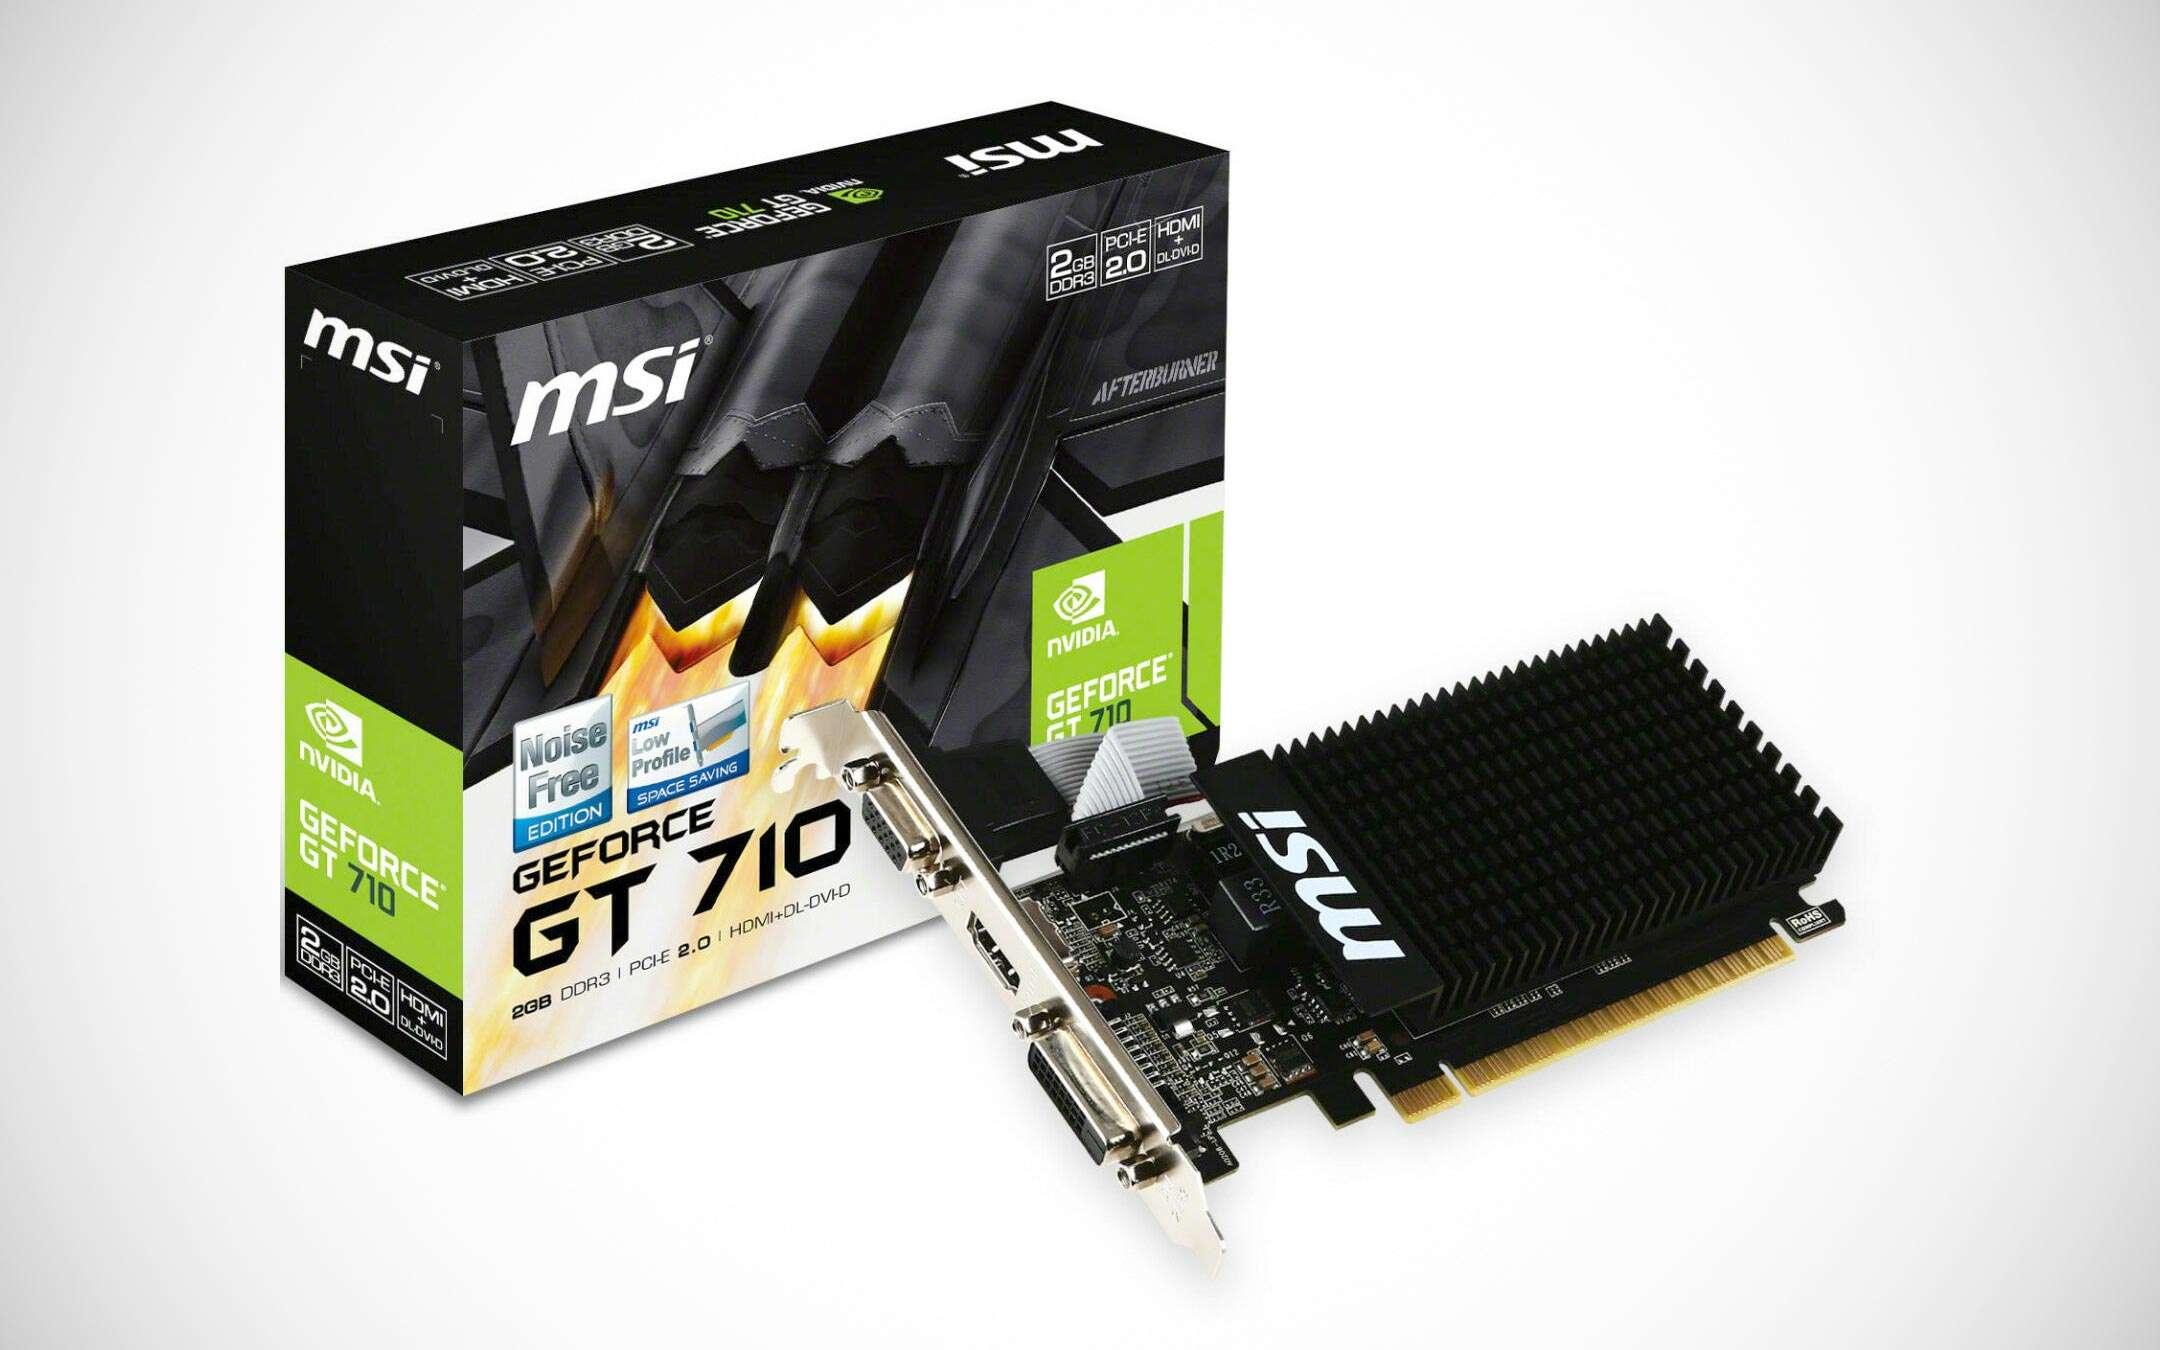 MSI GeForce GT710 video card for € 44.90